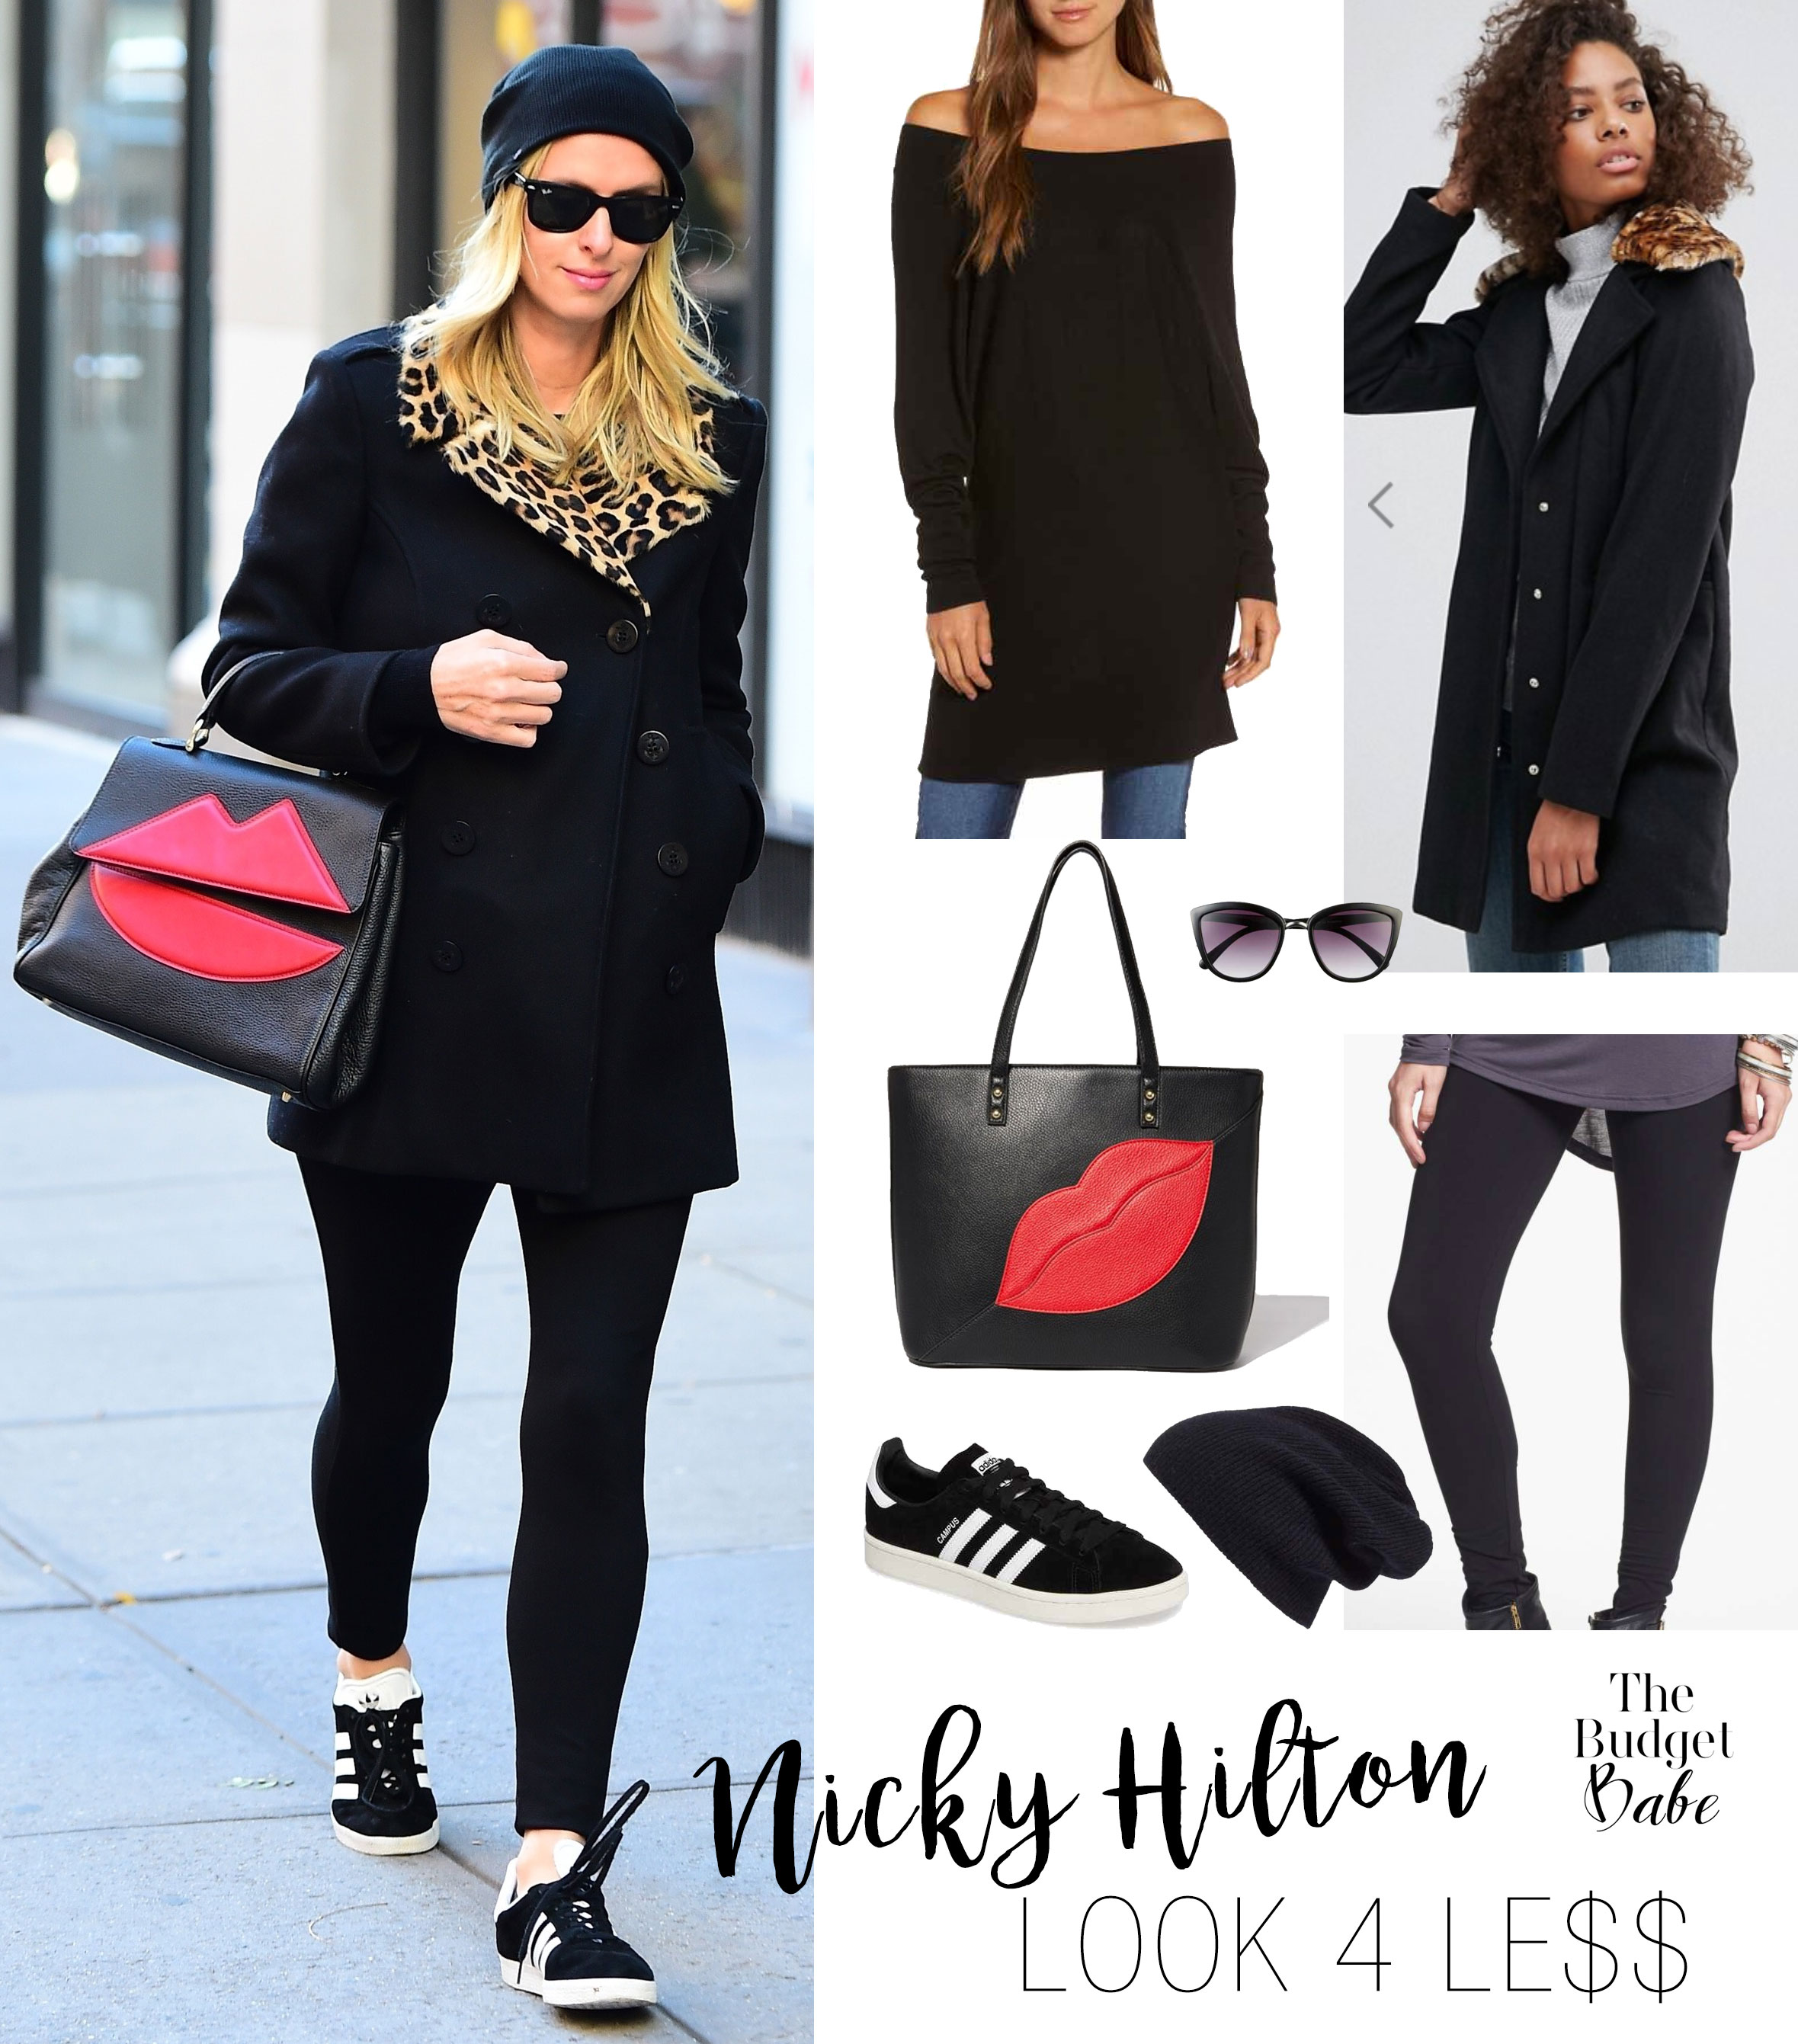 de5a7c32 Nicky Hilton's Leopard Collar Coat and Lips Handbag Look for Less ...